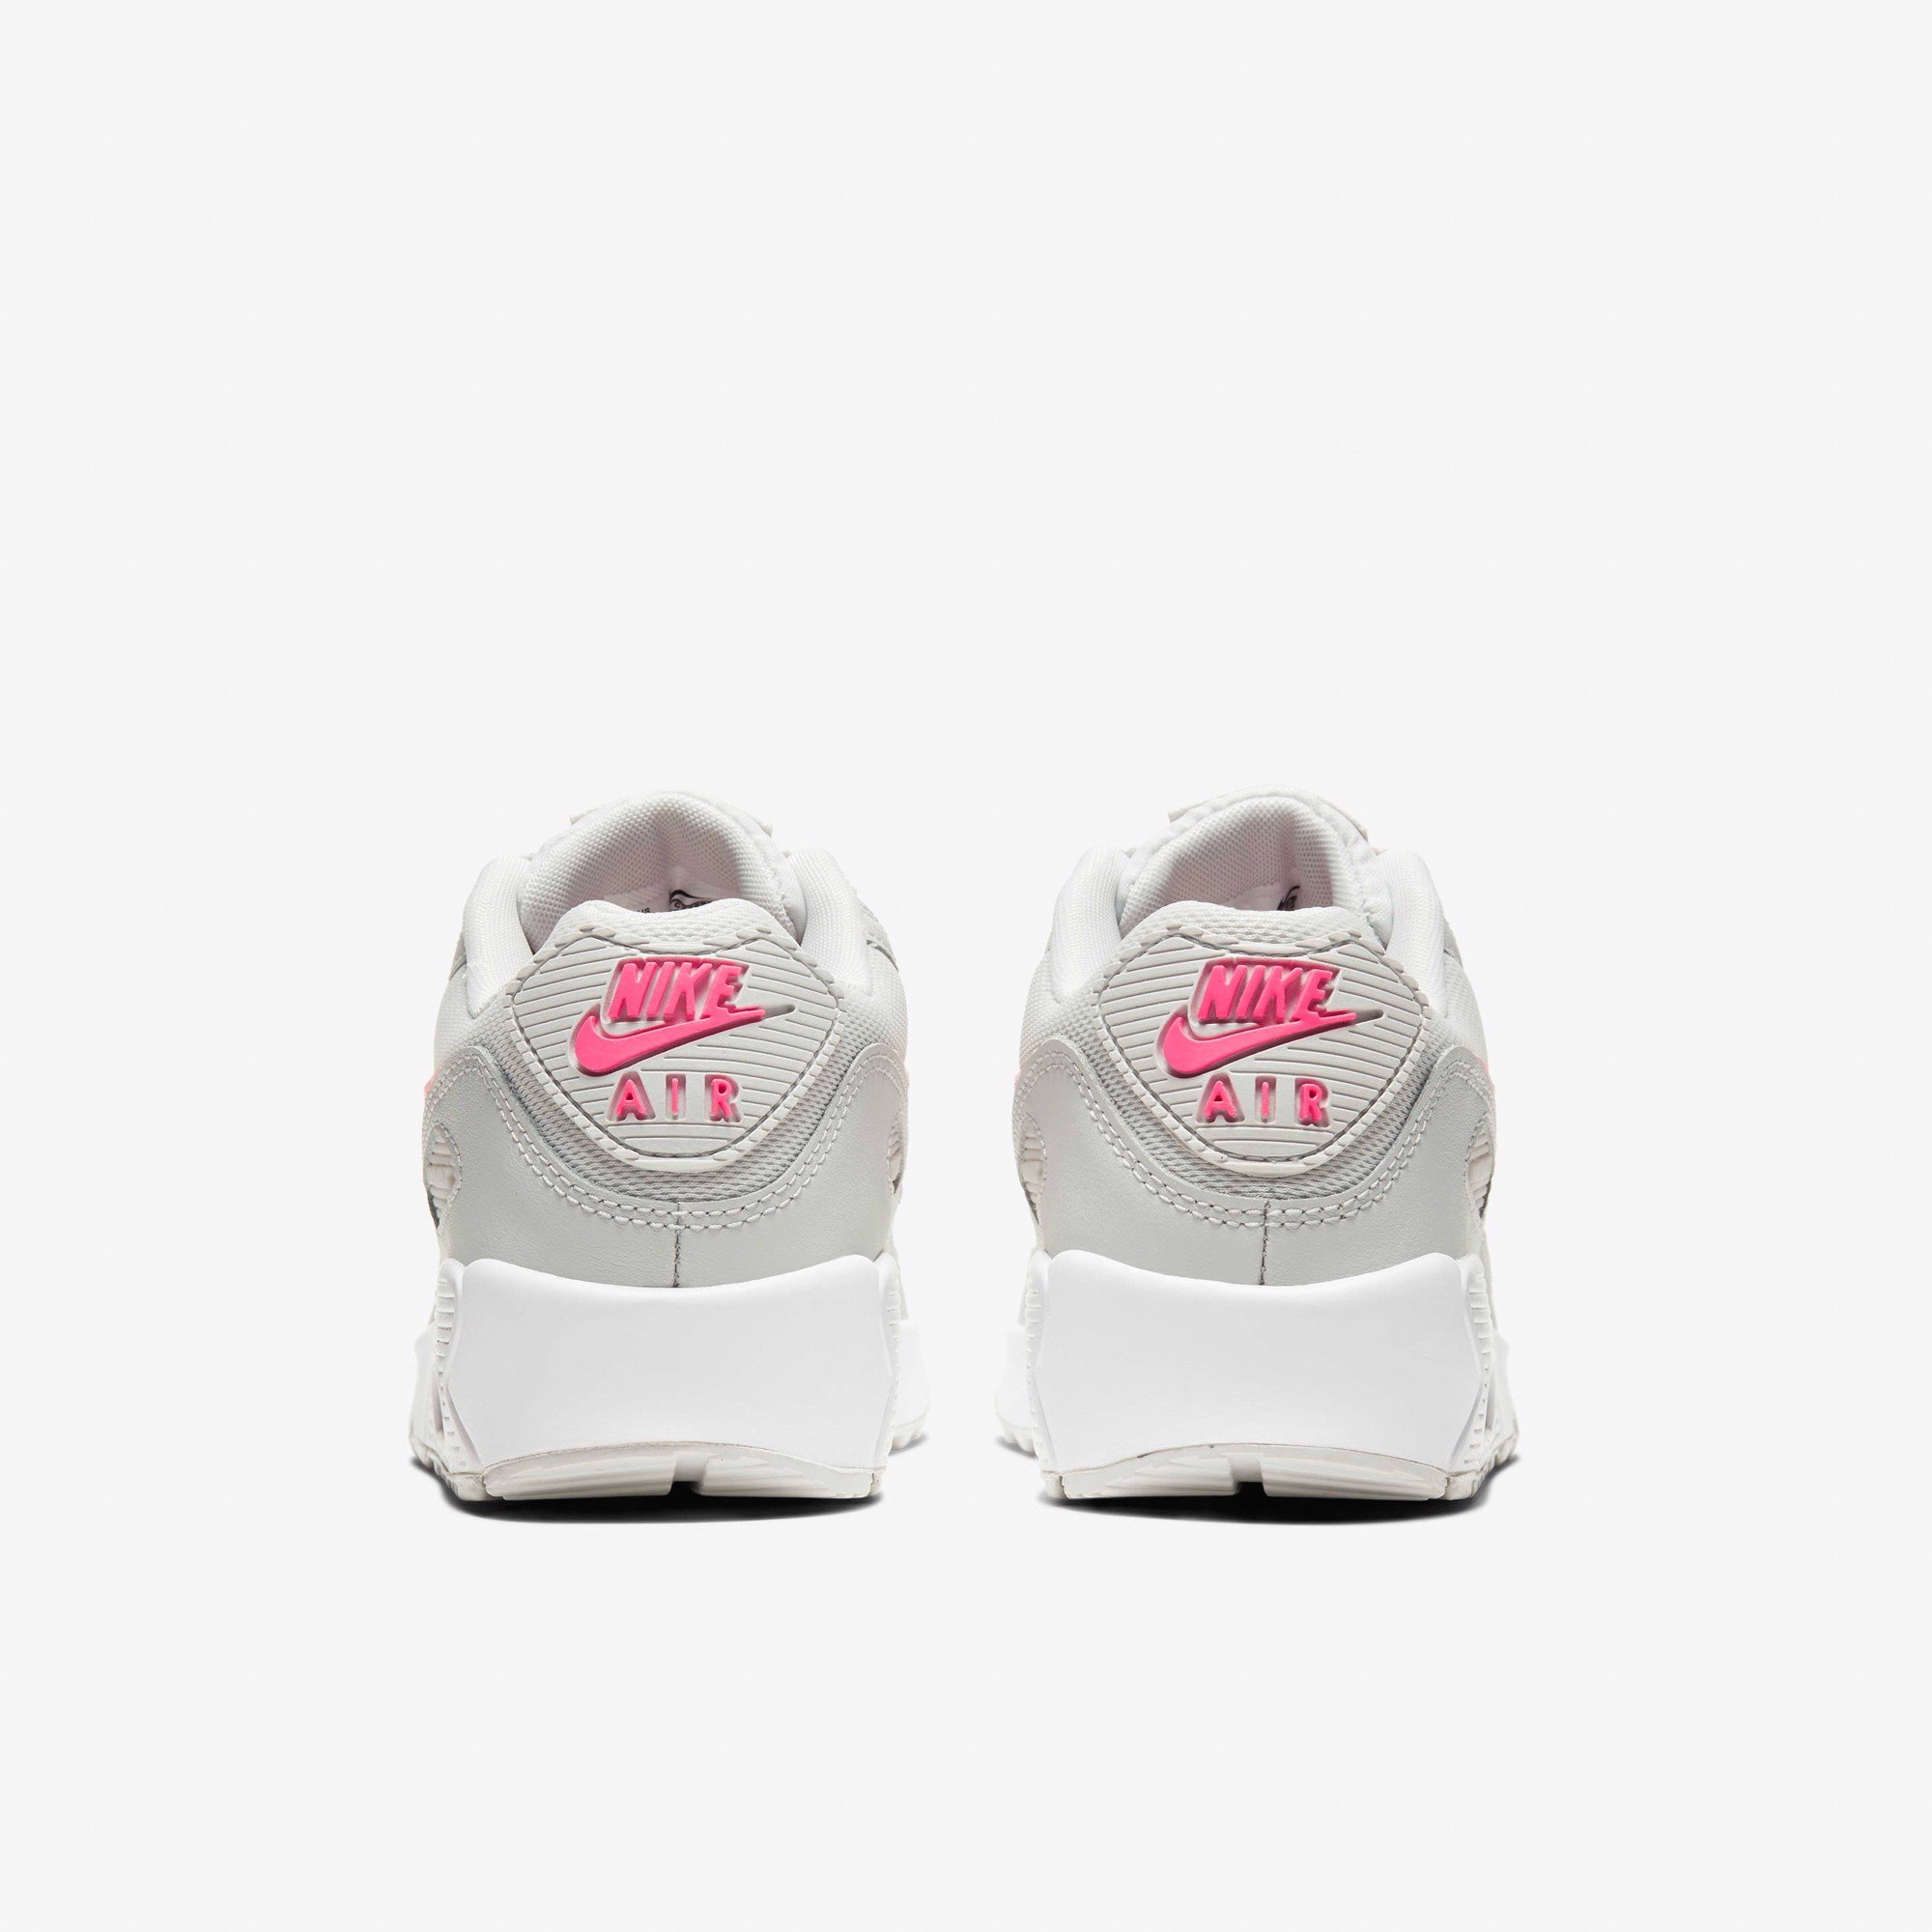 Nike Air Max 90 GS Grey Digital Pink CZ7086-001